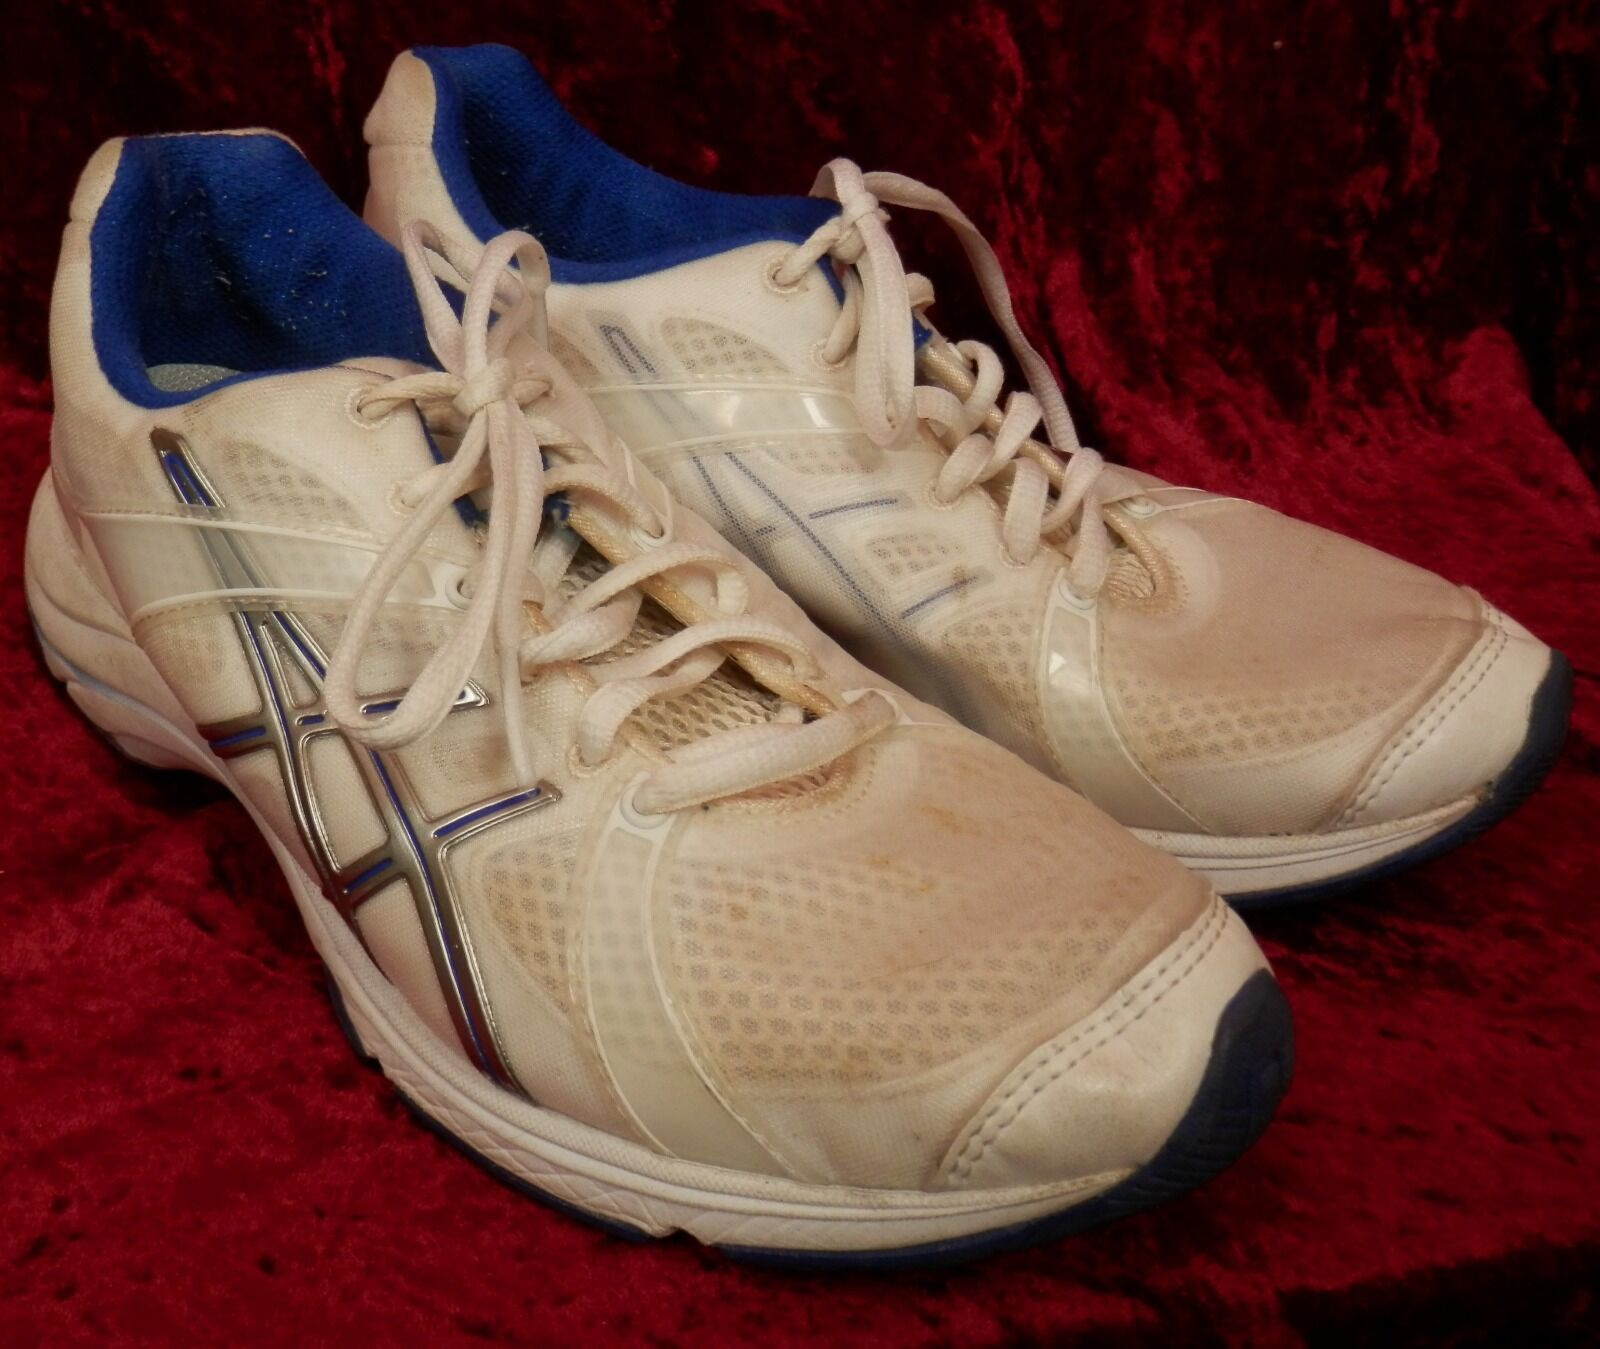 Asics womens Gel-Ipera white purple cheer athletic shoes size 6.5